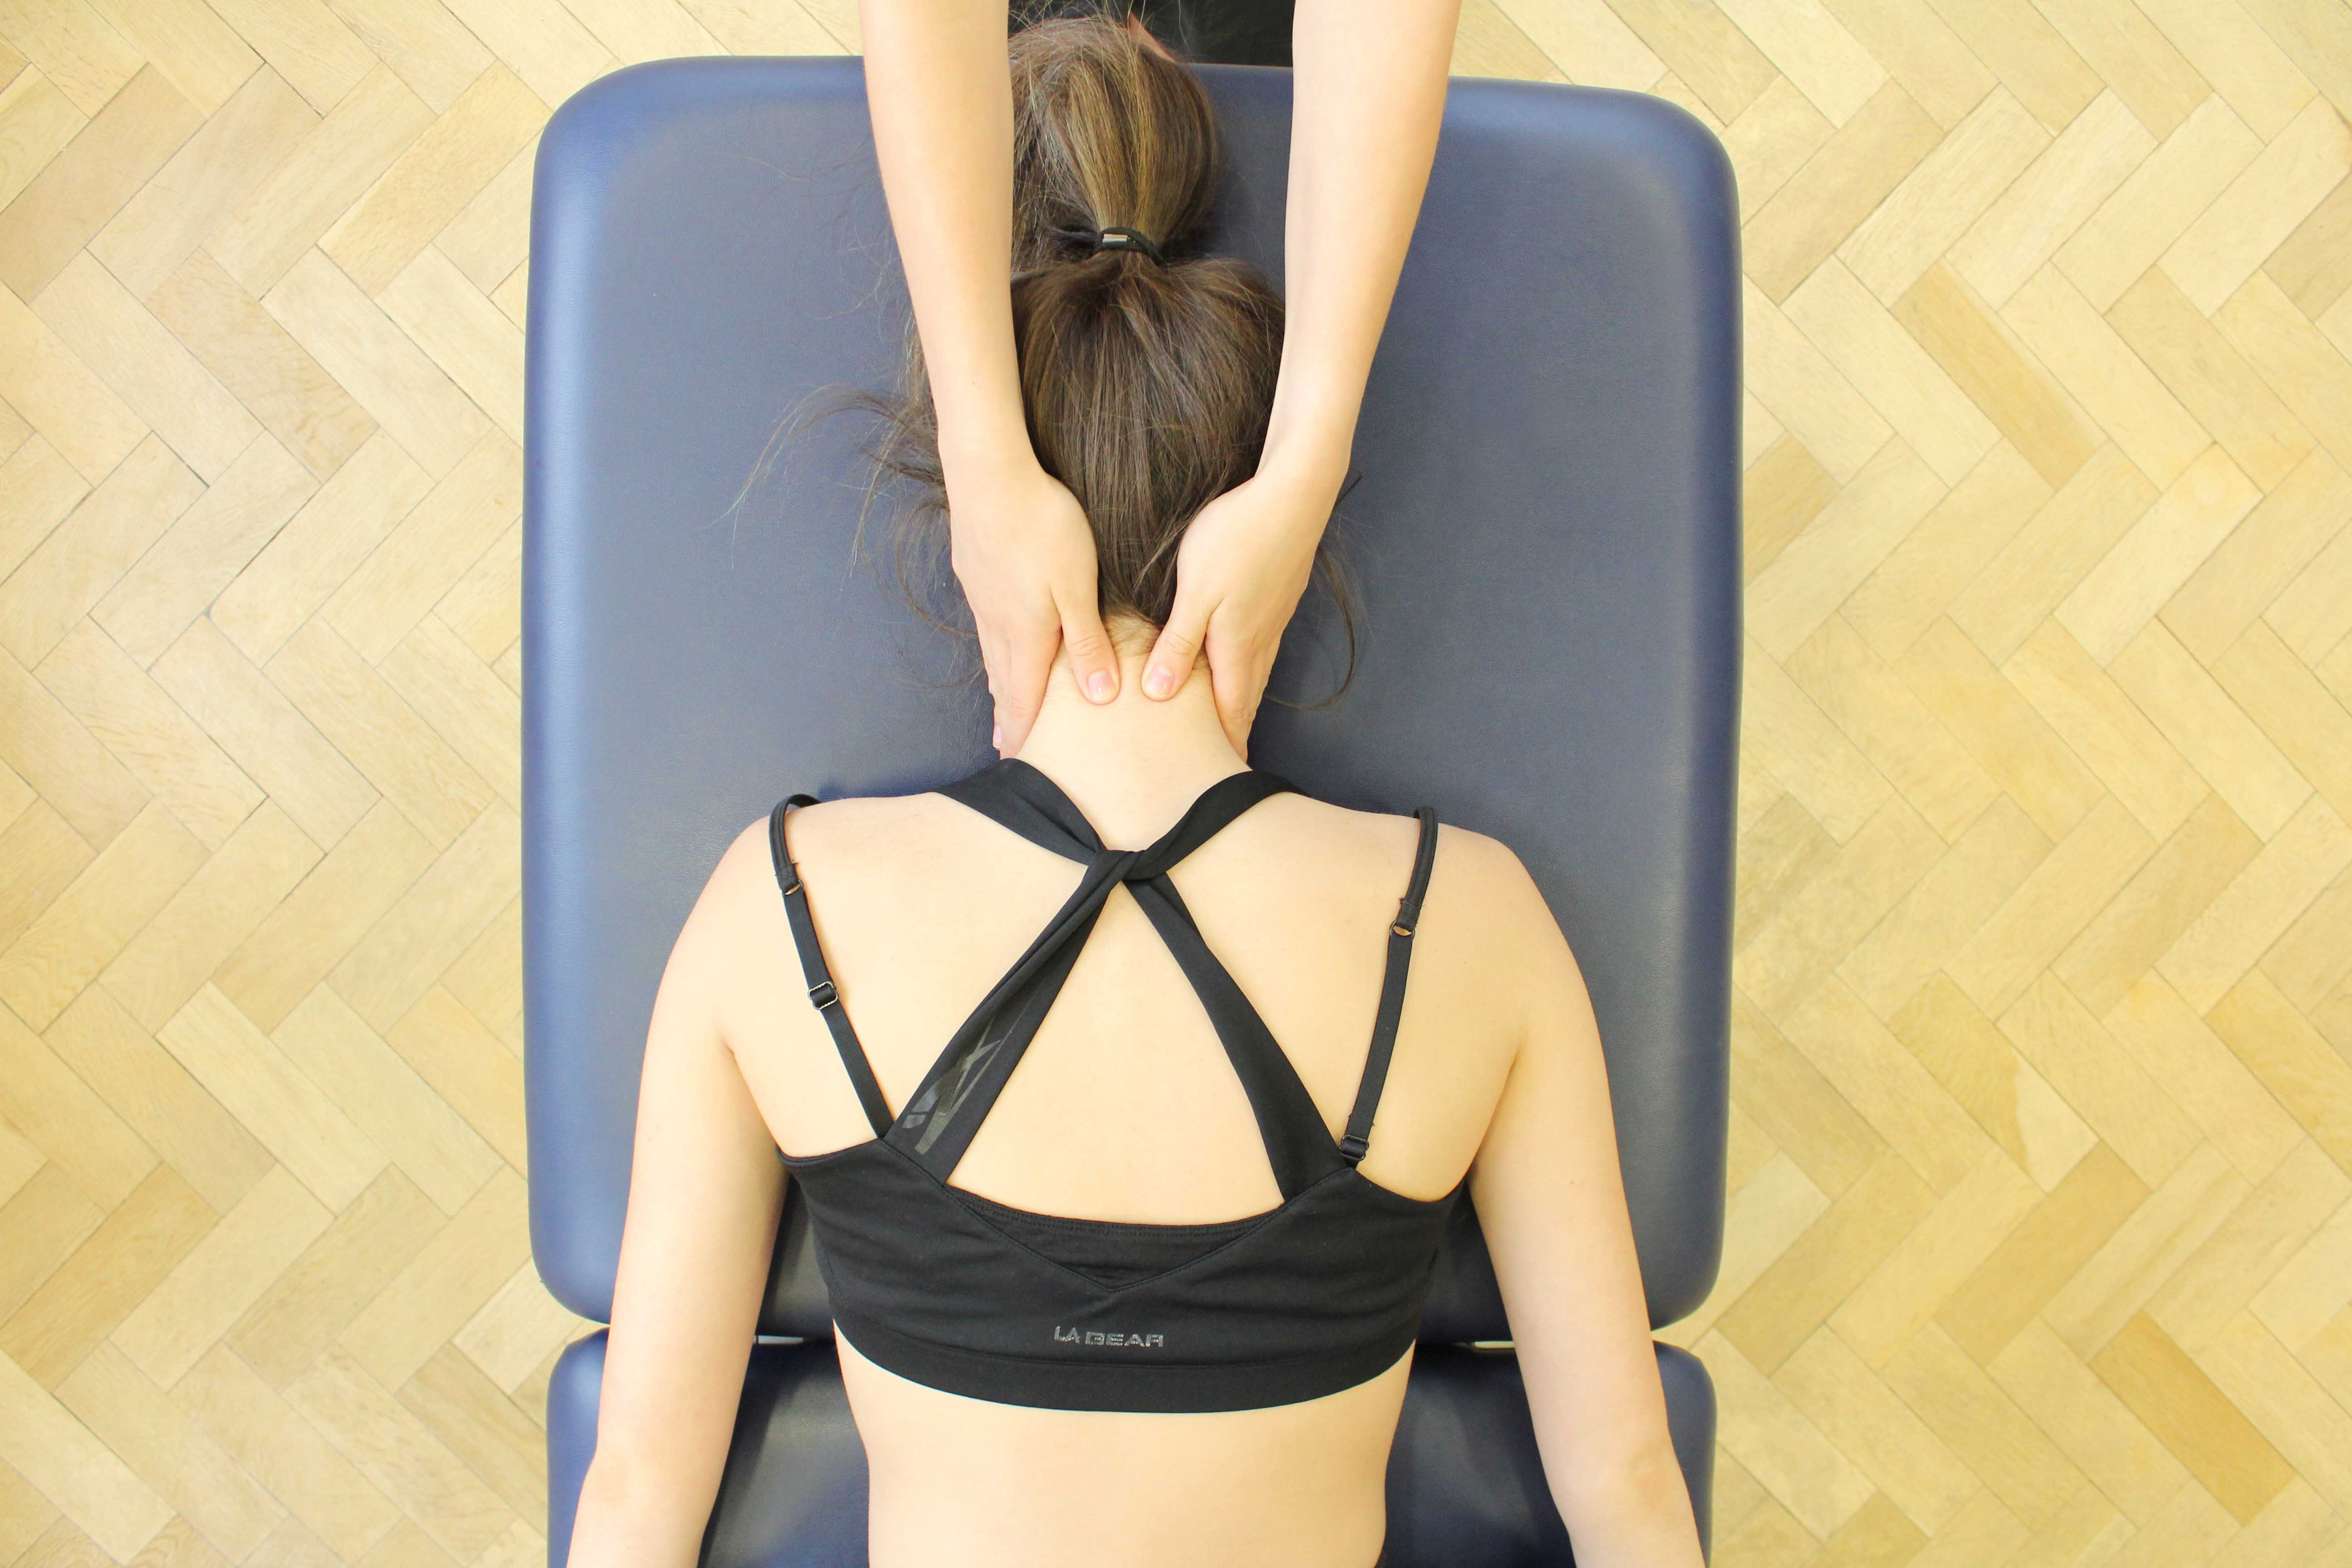 Mobilisations to the cervical vertebrea to releive pain and stiffness